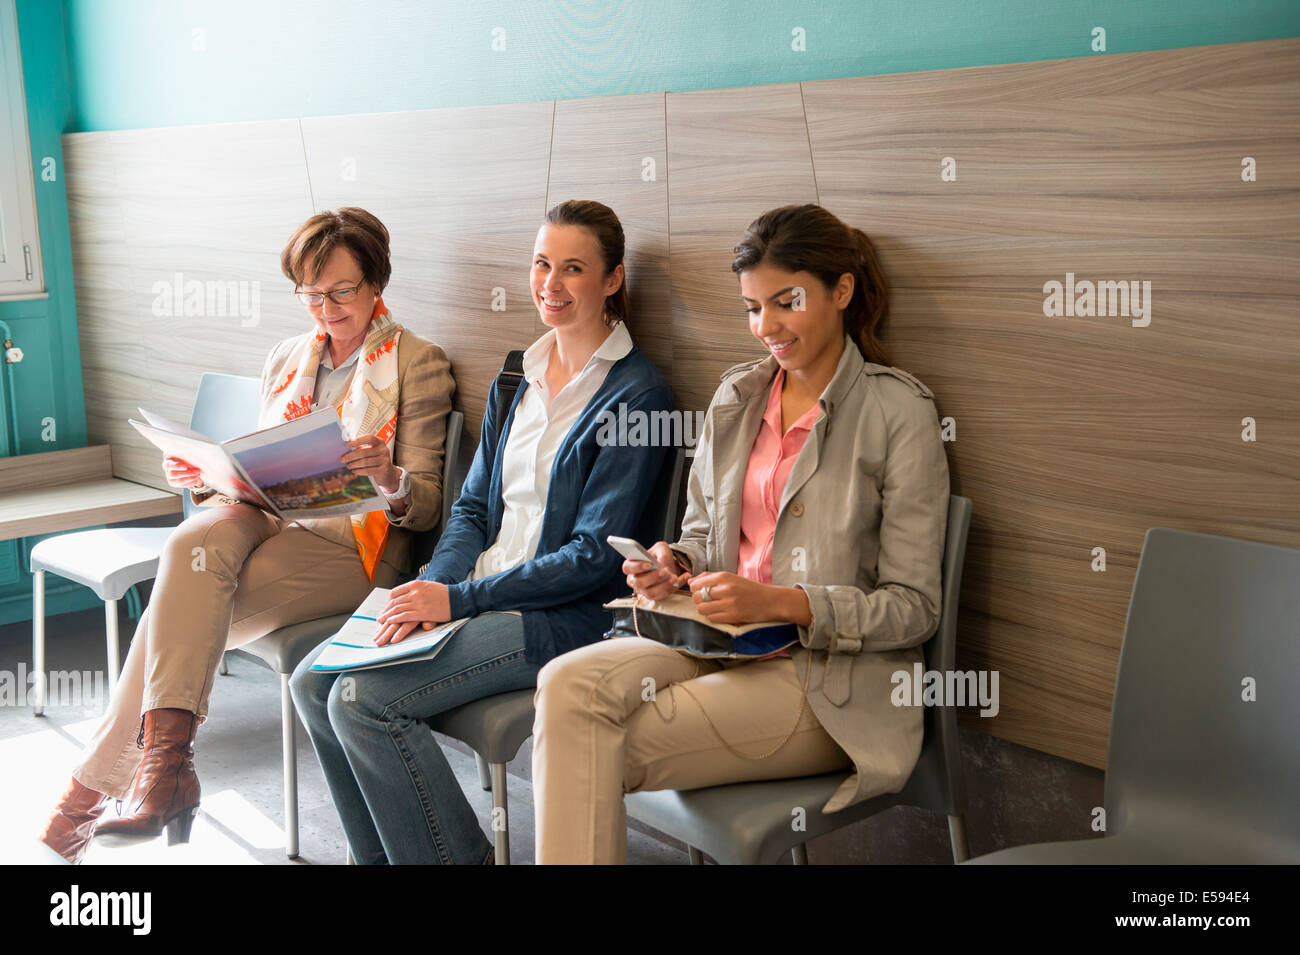 Three women in waiting area of hospital - Stock Image